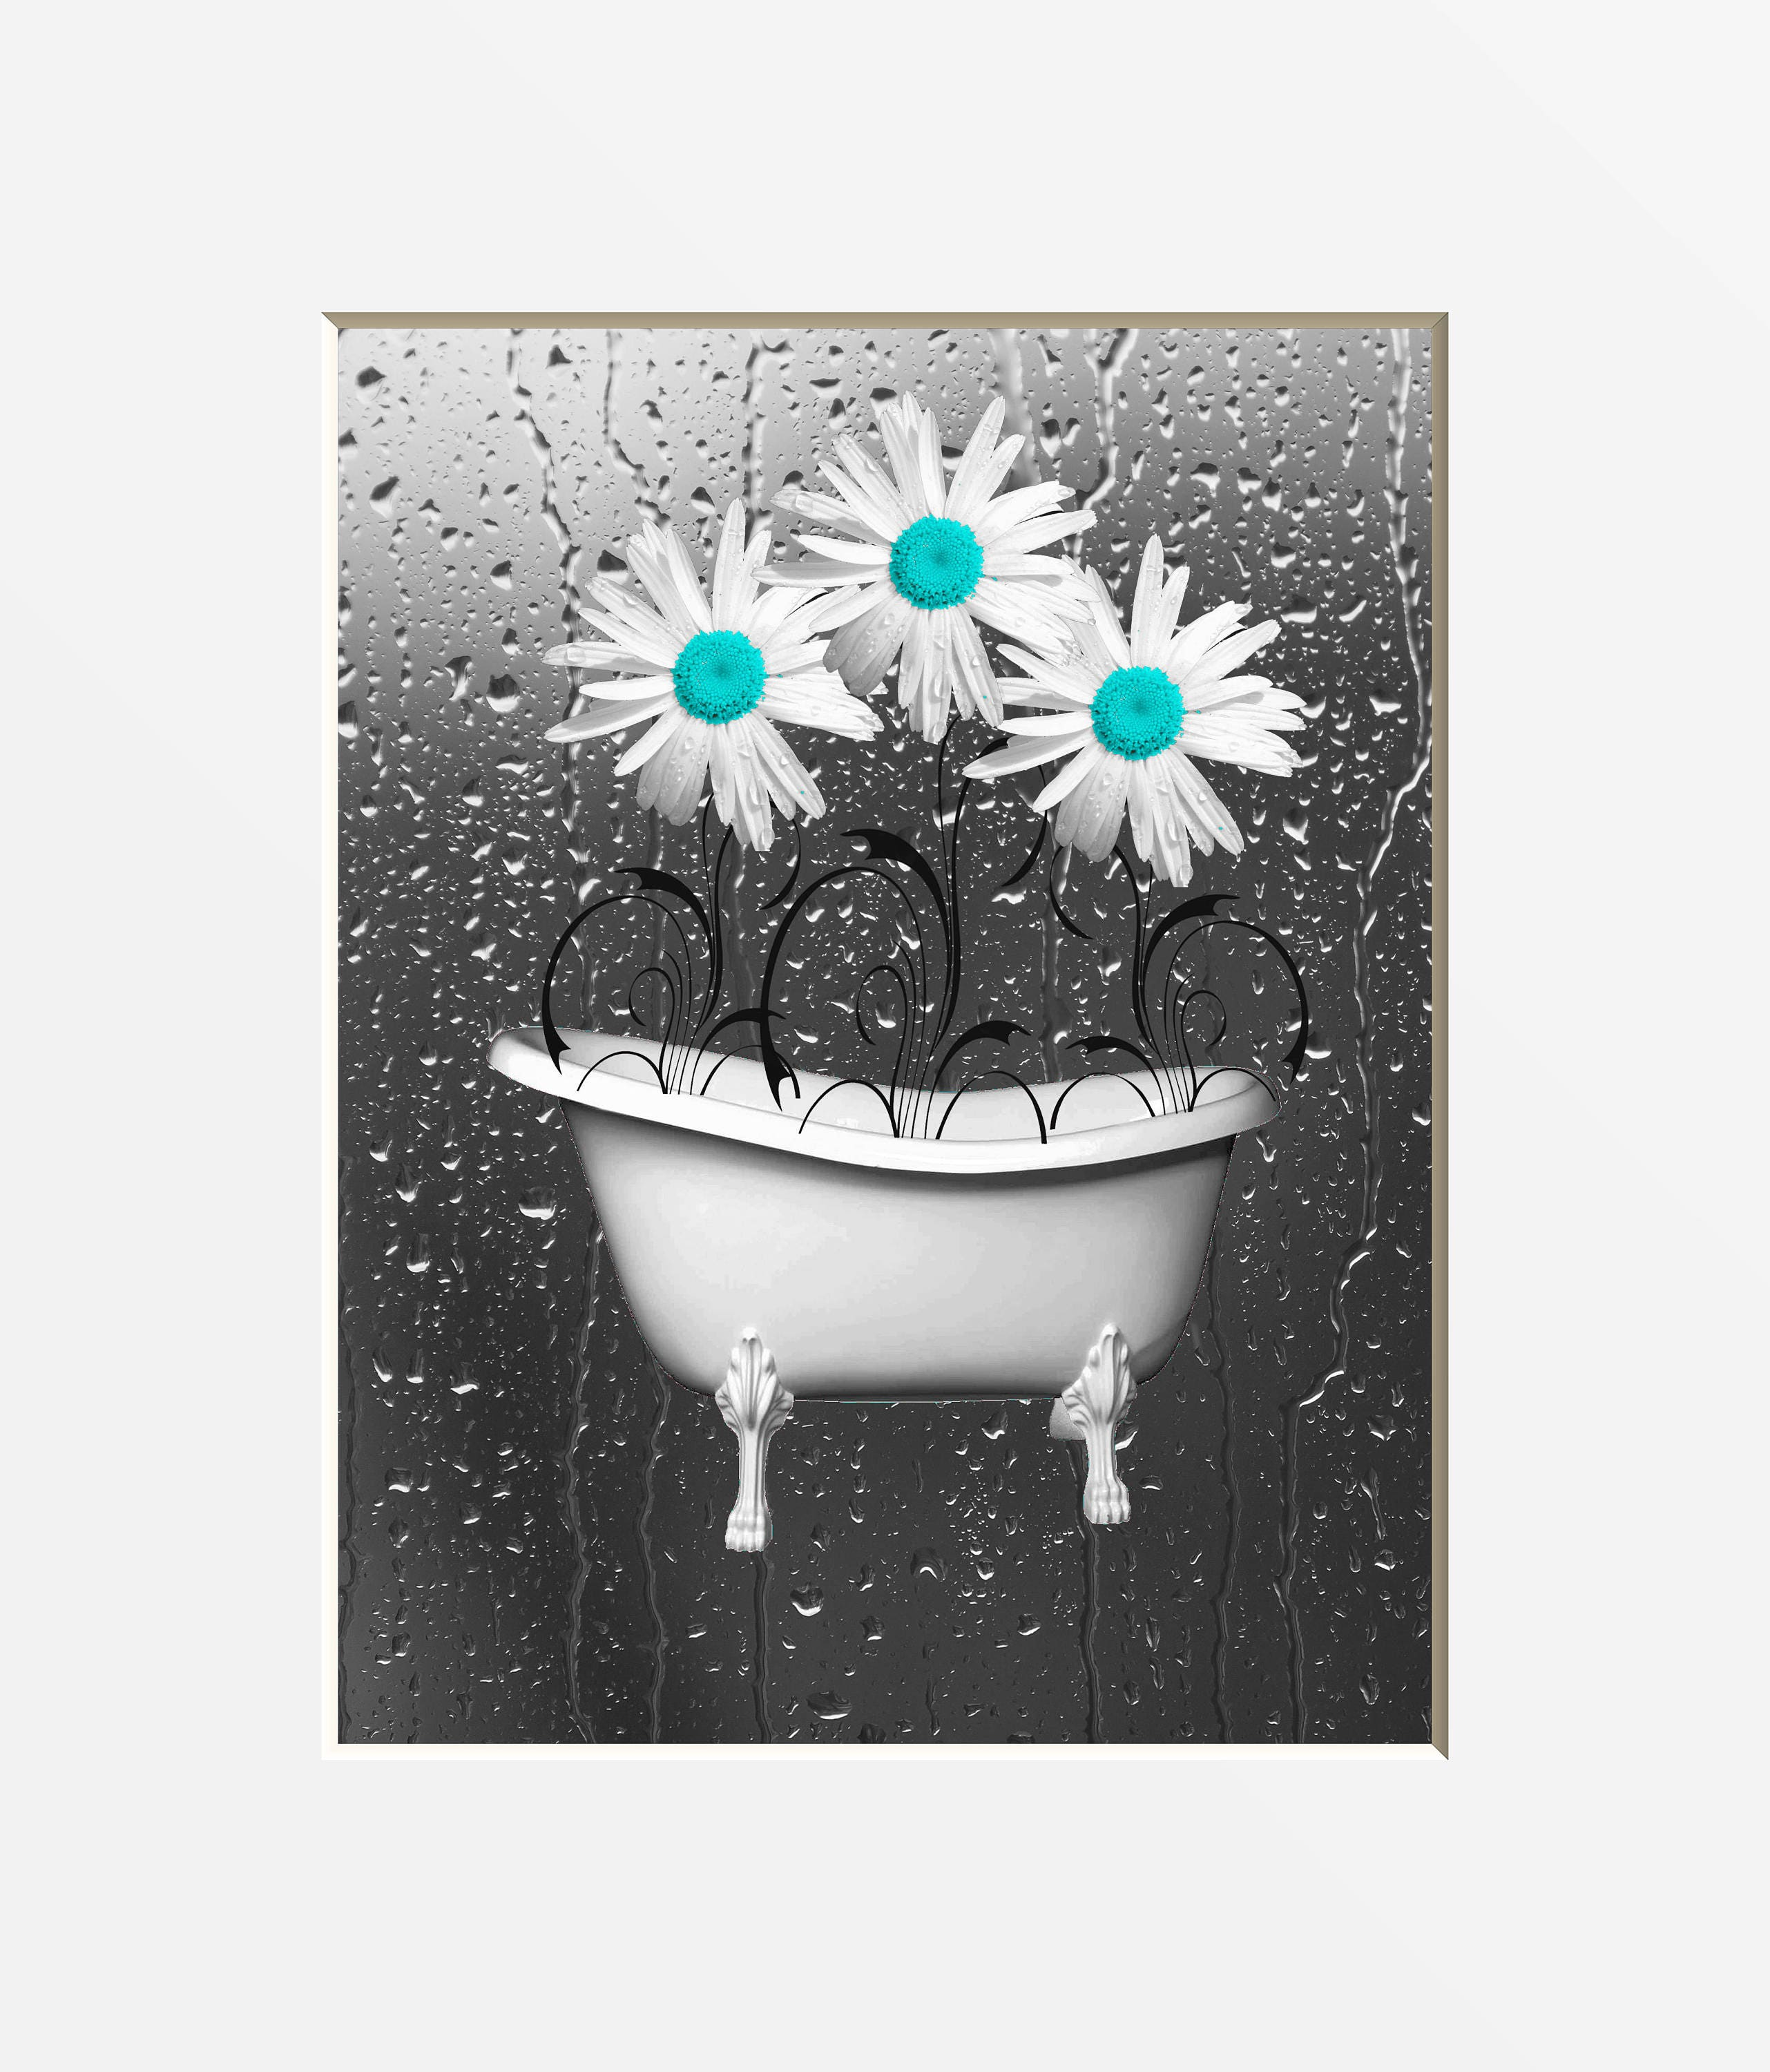 Teal Bathroom Wall Art Daisy Flowers Teal Gray Home Decor